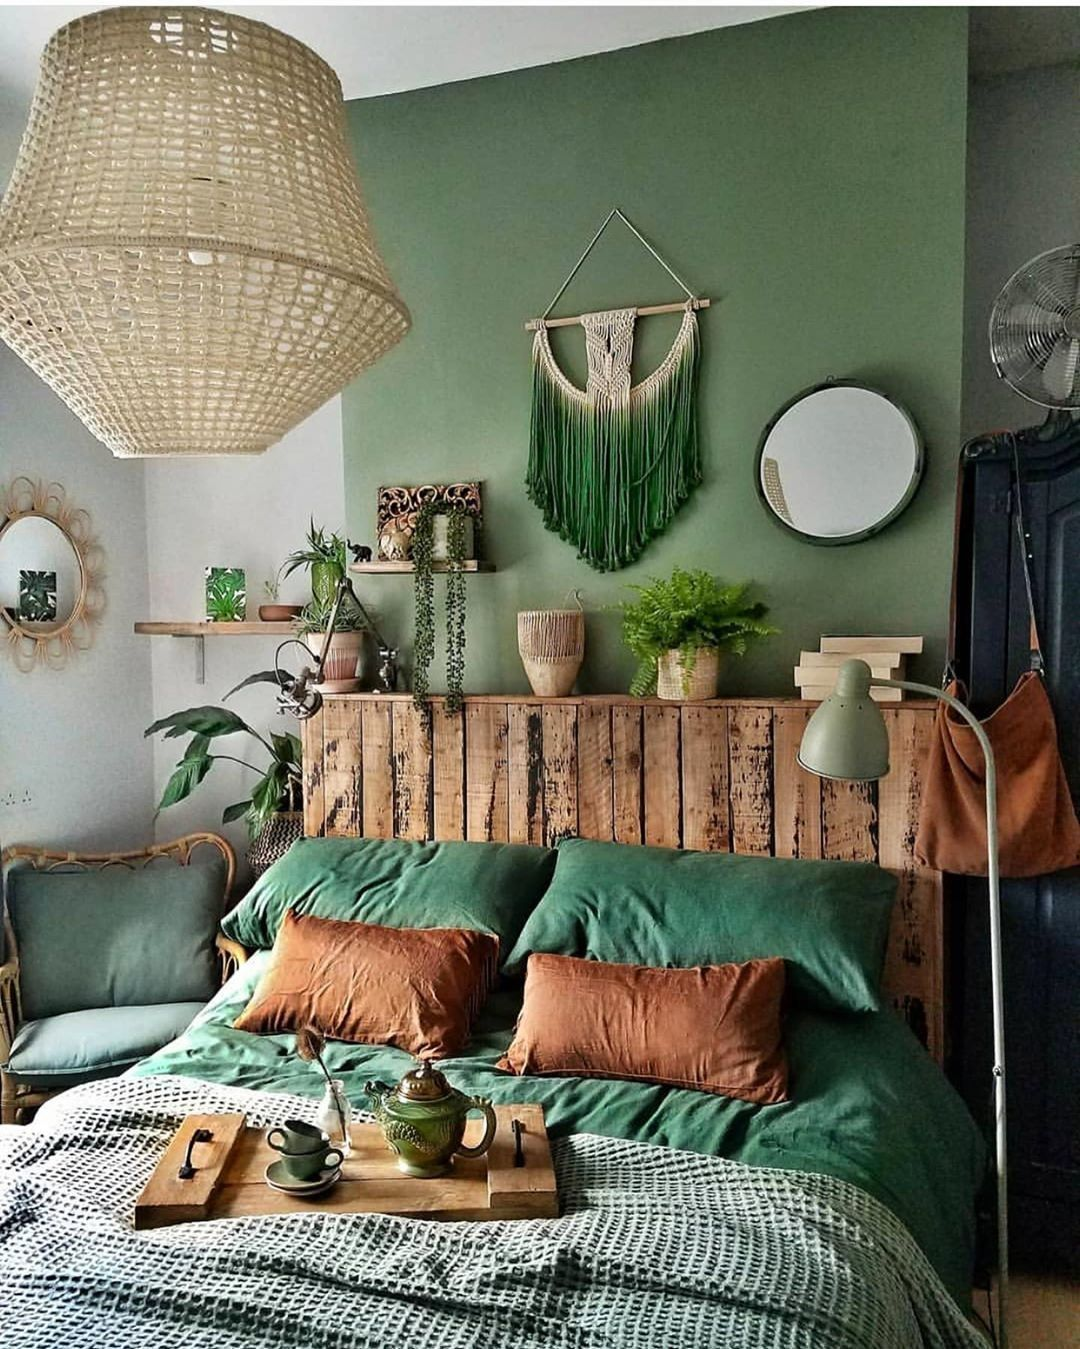 Awesome Bohemian Bedroom Designs and Decor | Bohemian Style Ideas #bohemianbedrooms